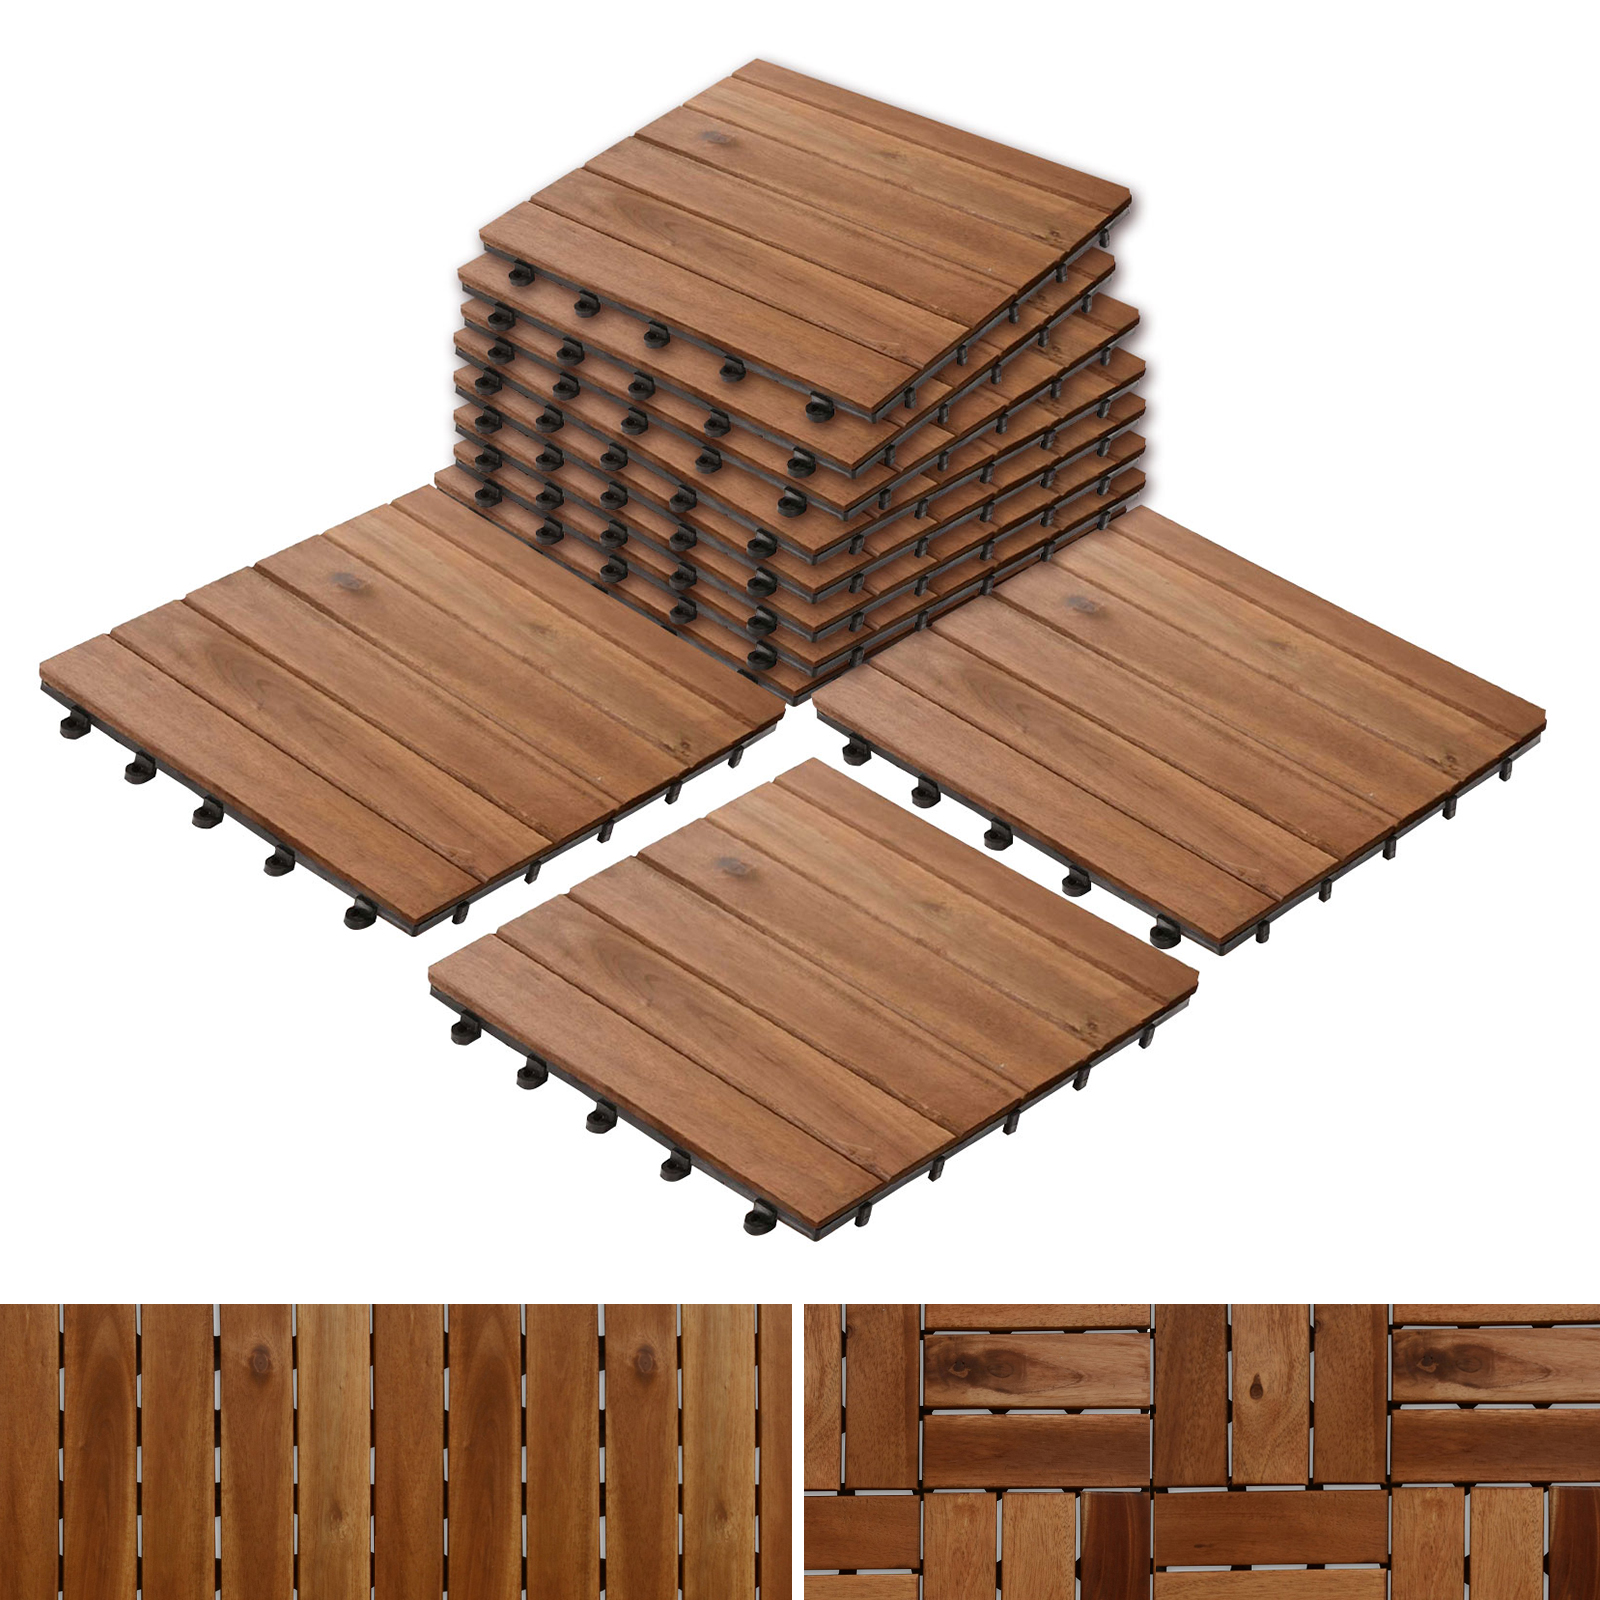 Patio Pavers | Composite Decking Flooring and Deck Tiles | Acacia Wood | Suitable for Indoor and Outdoor Applications | Stripe Pattern | 12x12 inches - Pack of 11 Tiles